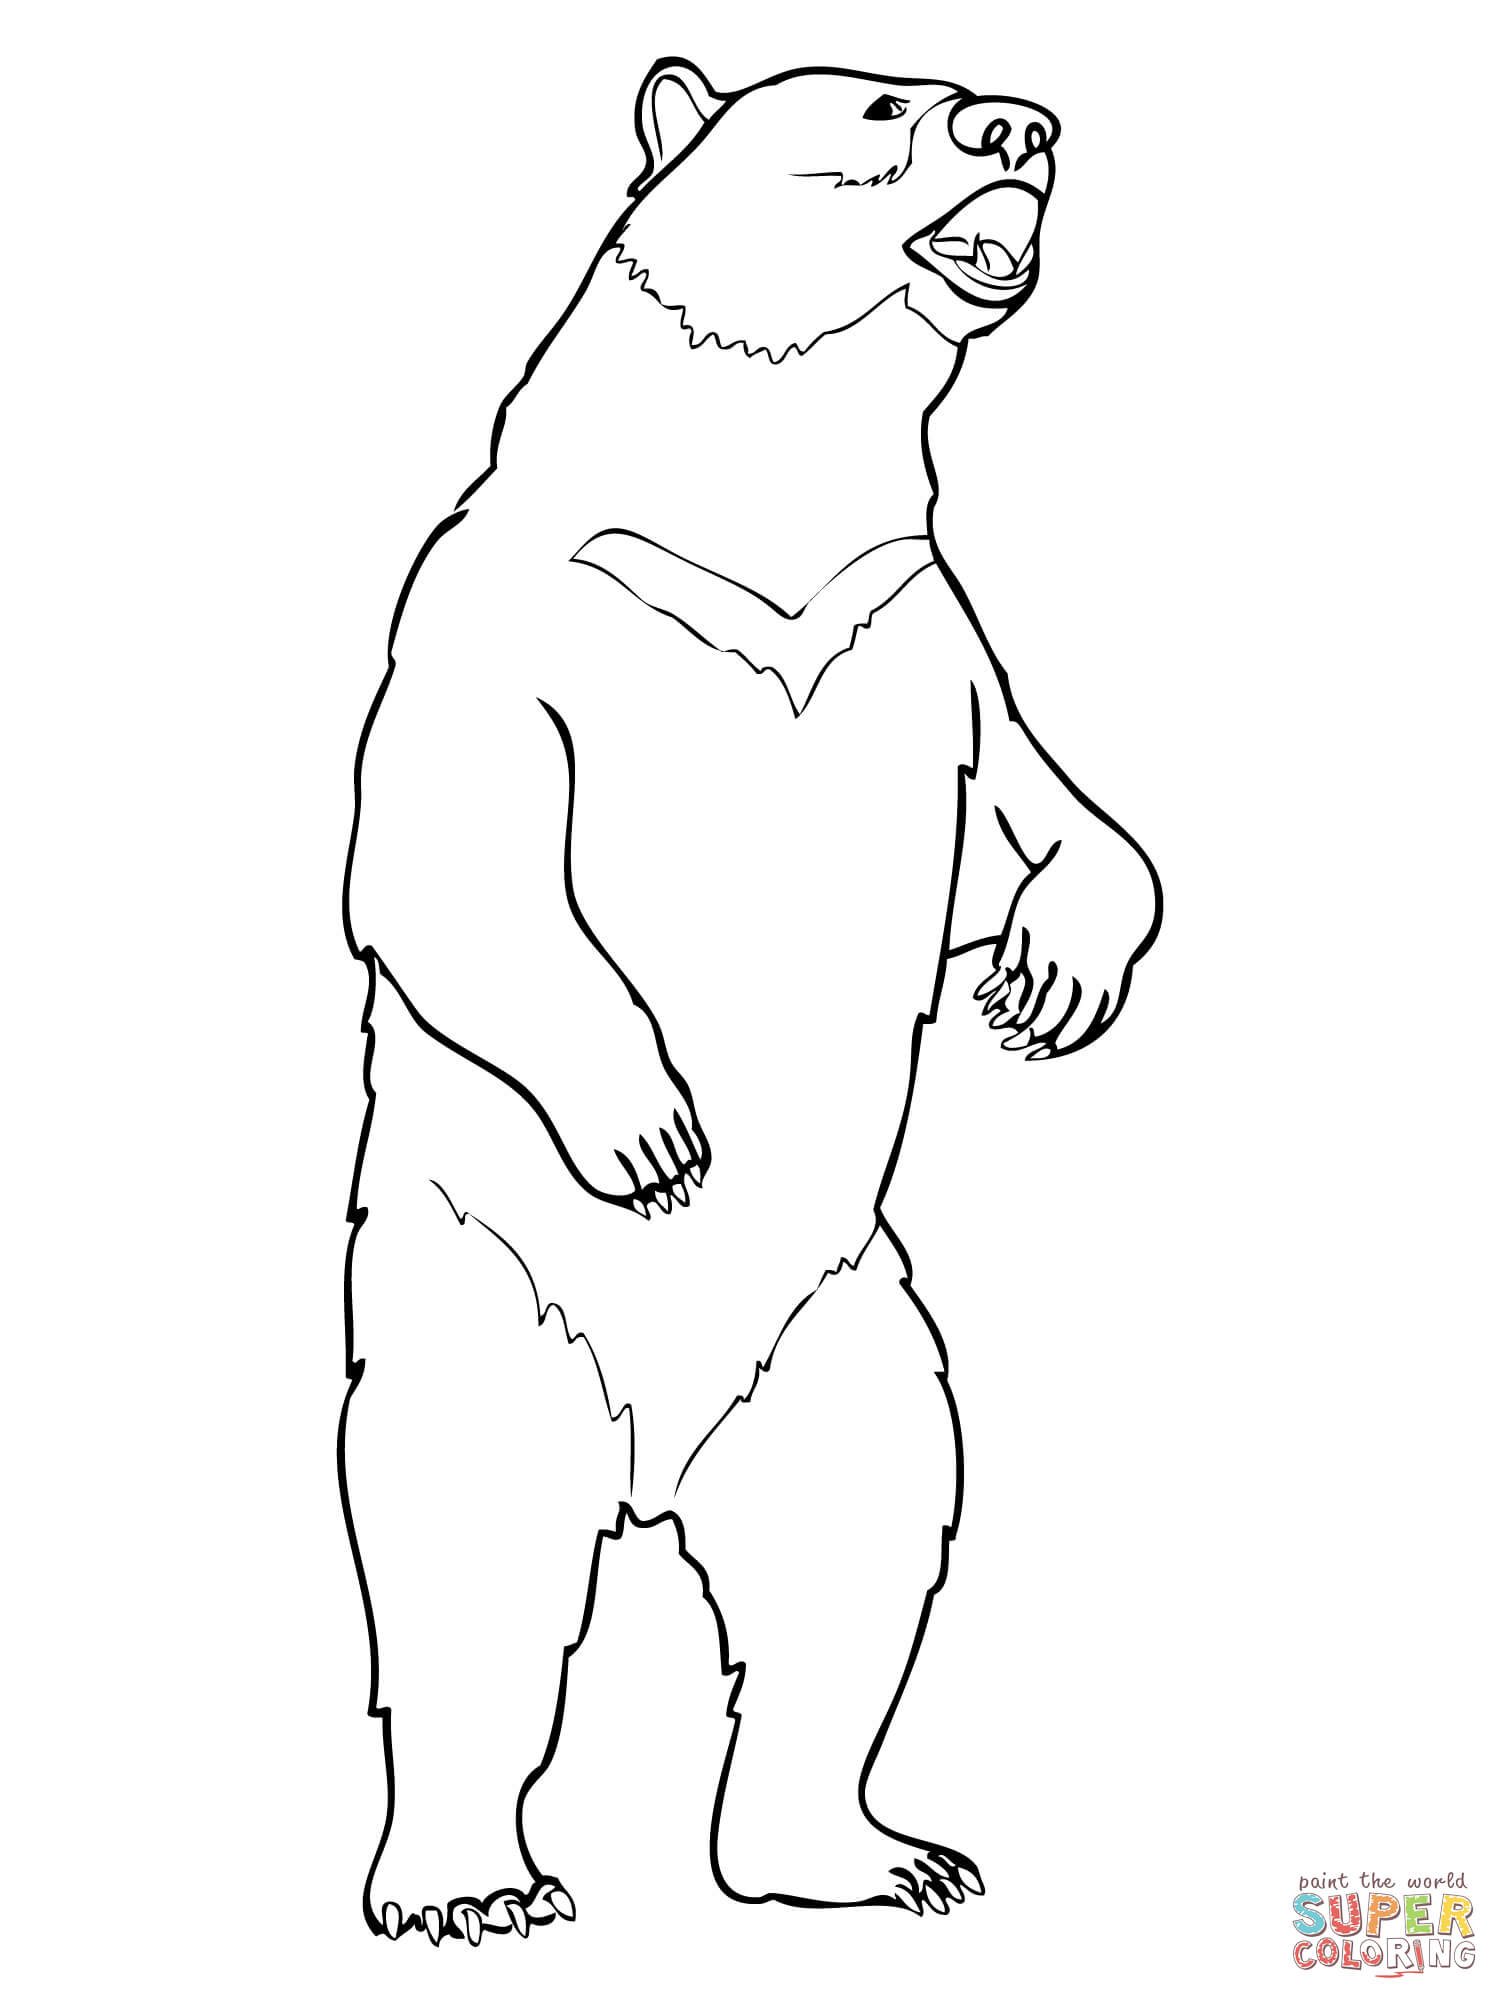 grizzly bear outline california bear clipart free download on clipartmag outline grizzly bear